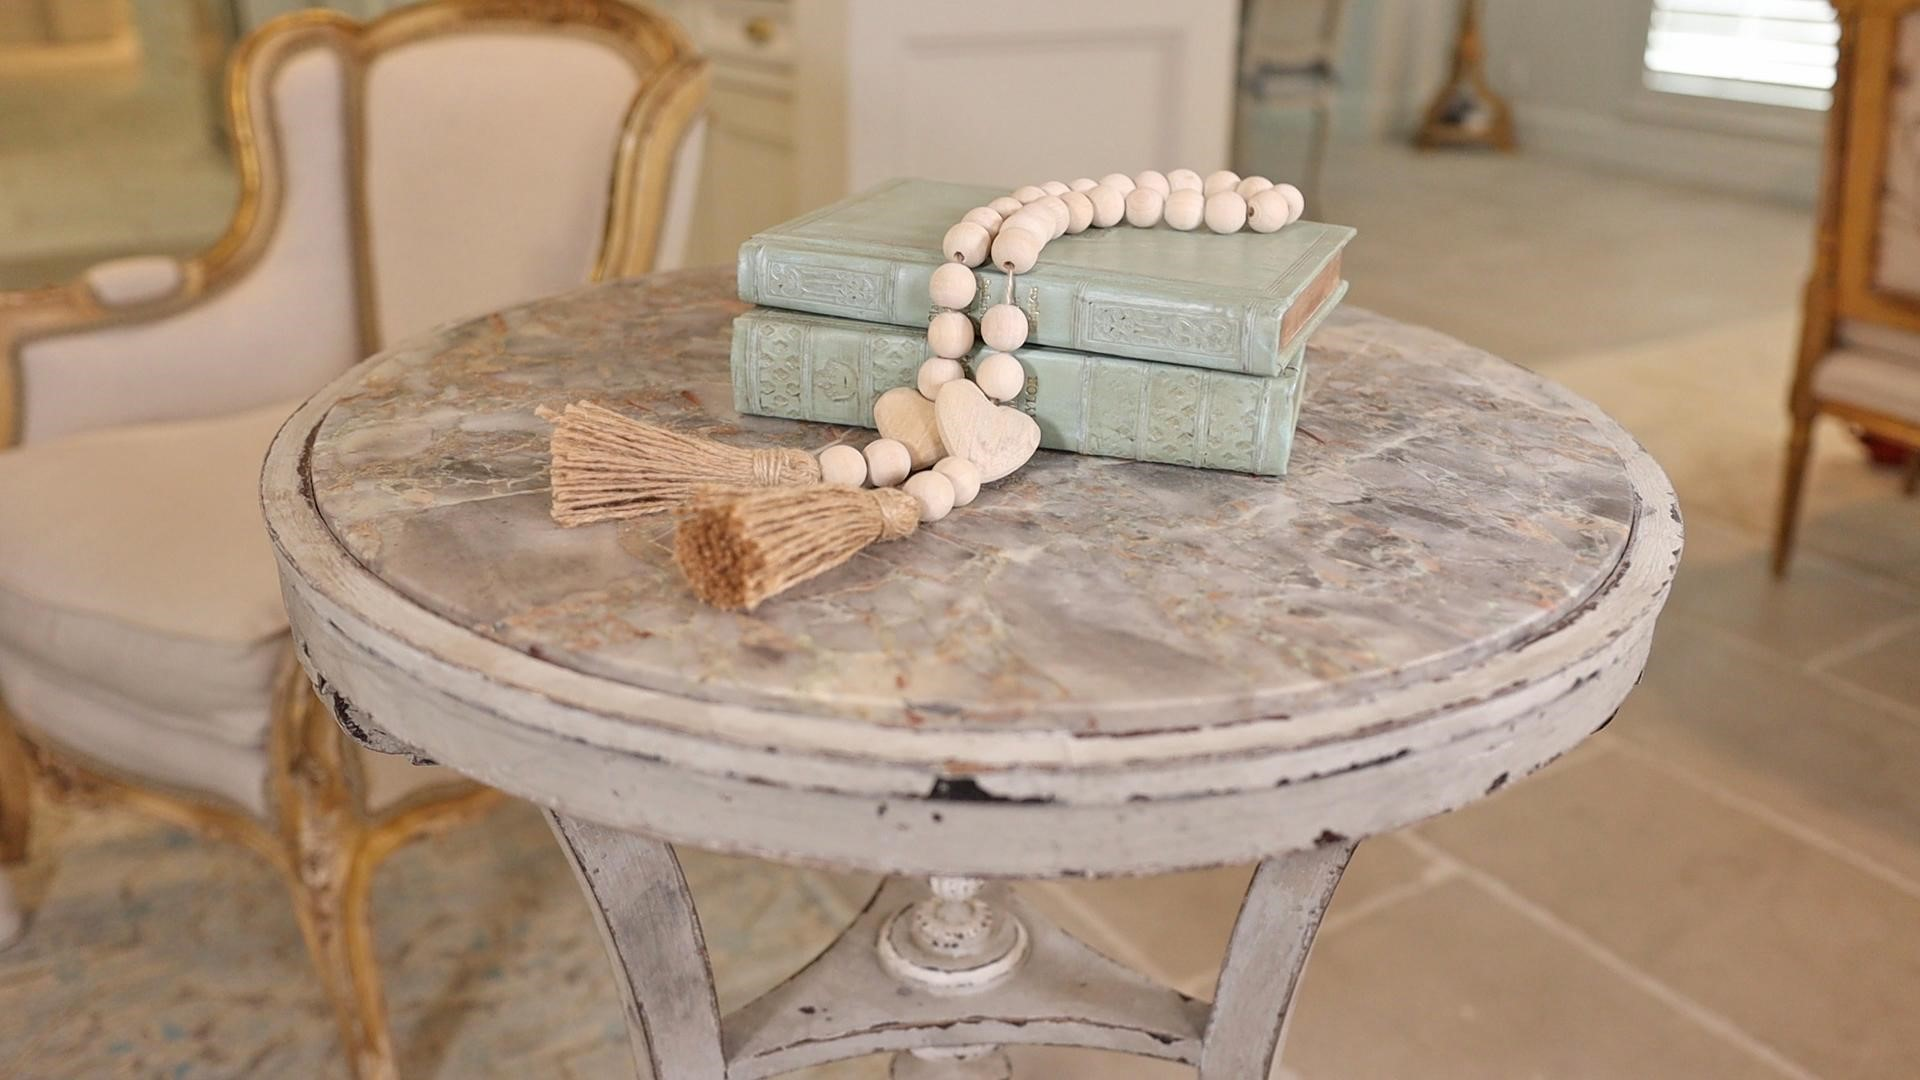 Mint blue vintage books with large wooden rosary-style beads on a distressed end antique table